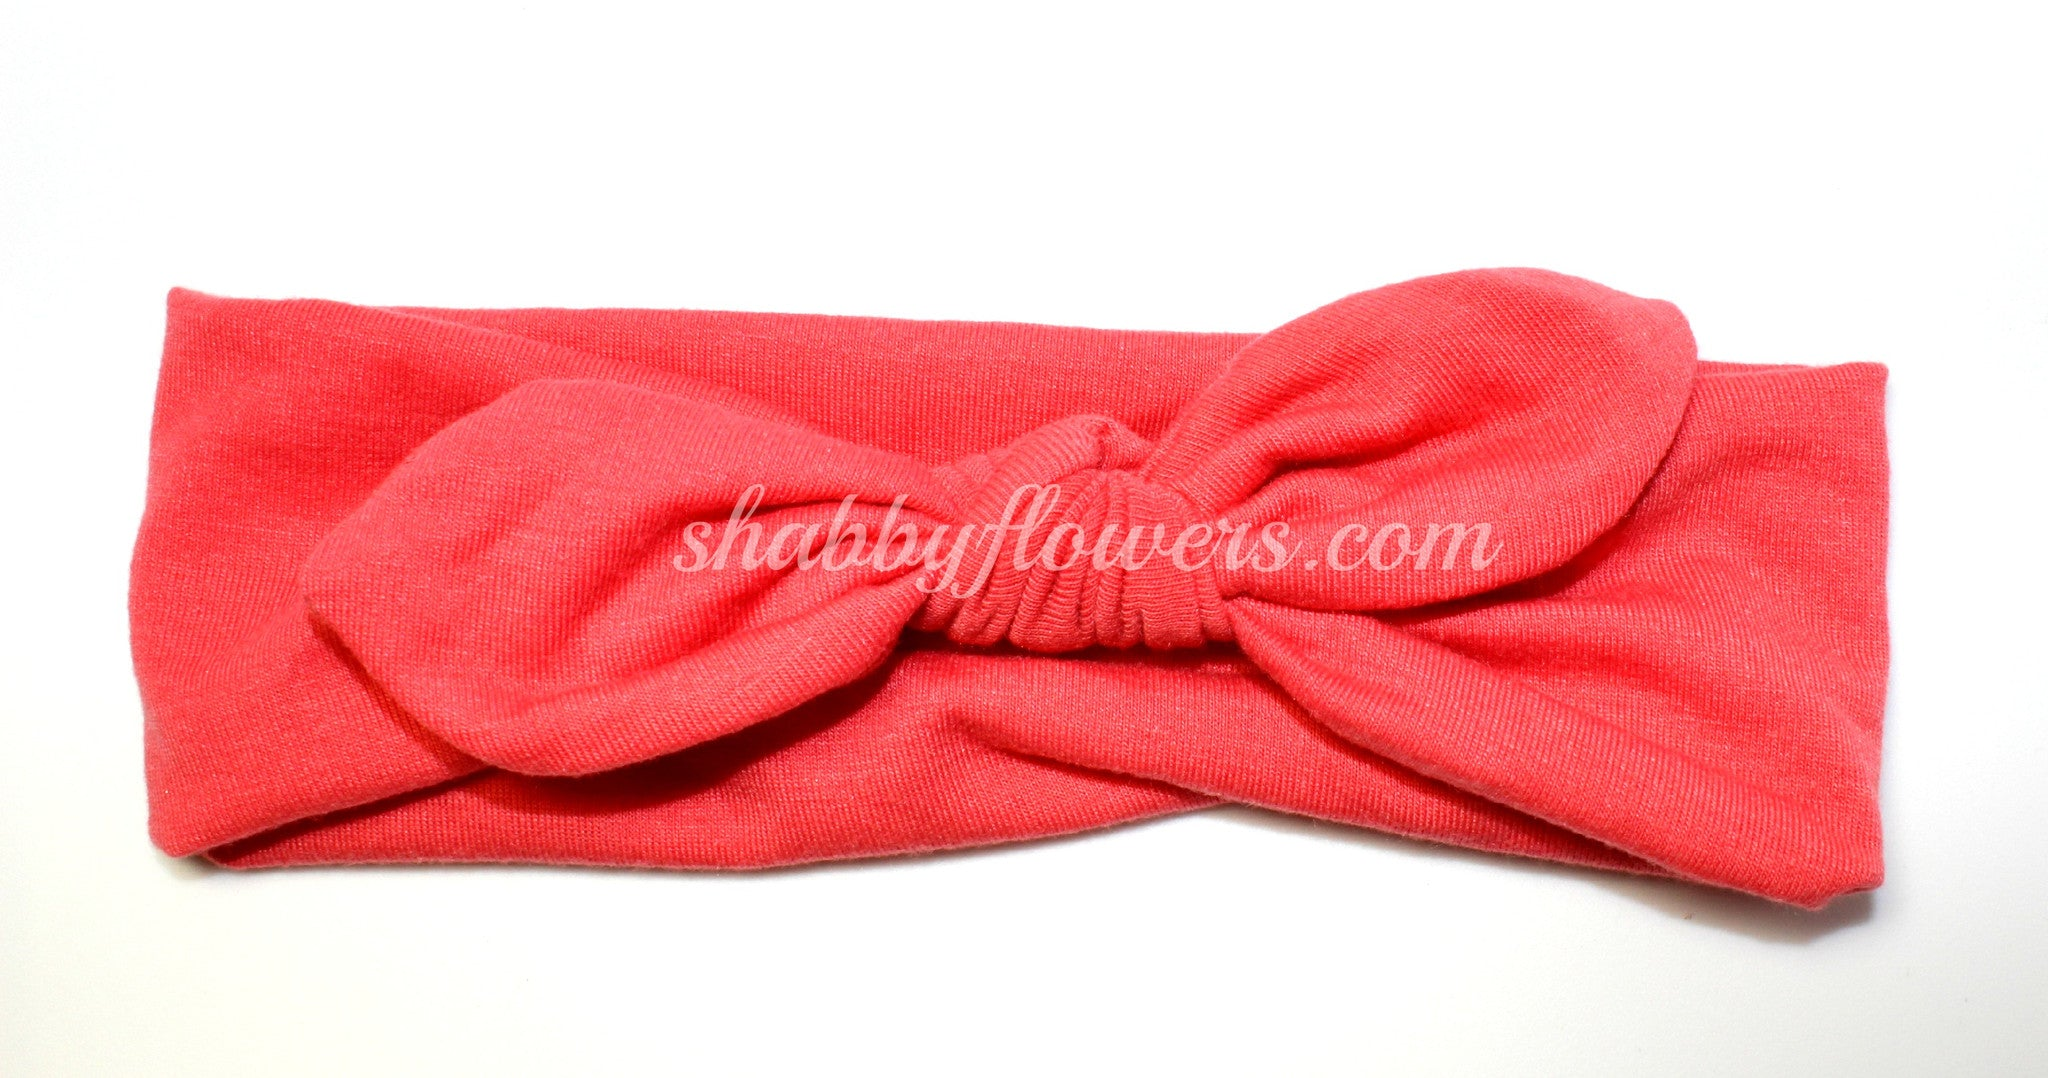 Knot Headband - Dark Coral - Small - shabbyflowers.com